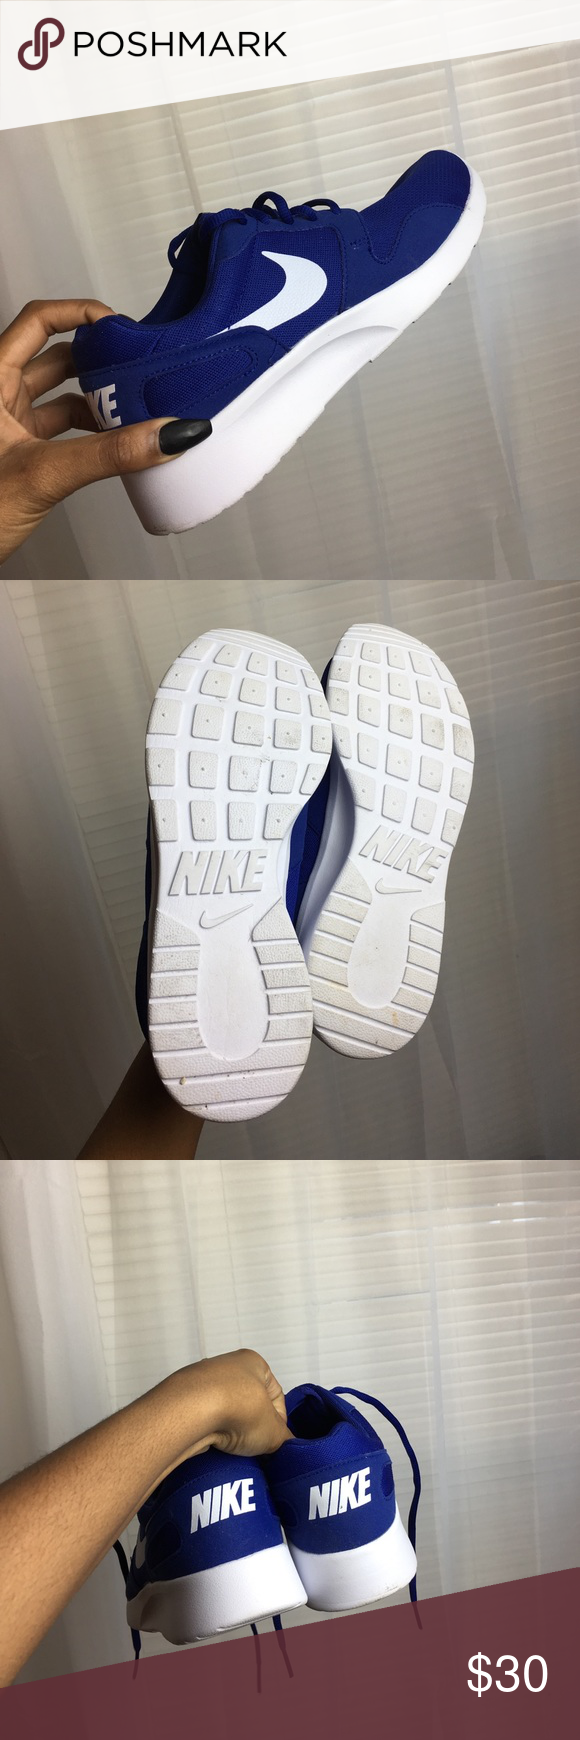 Woman's Kaishi Nike Deep Royal Blue w/ White. Come with extra white shoe laces in the box. Will have the original Nike box which is in good condition. Gently used, only worn once! Nike Shoes Sneakers